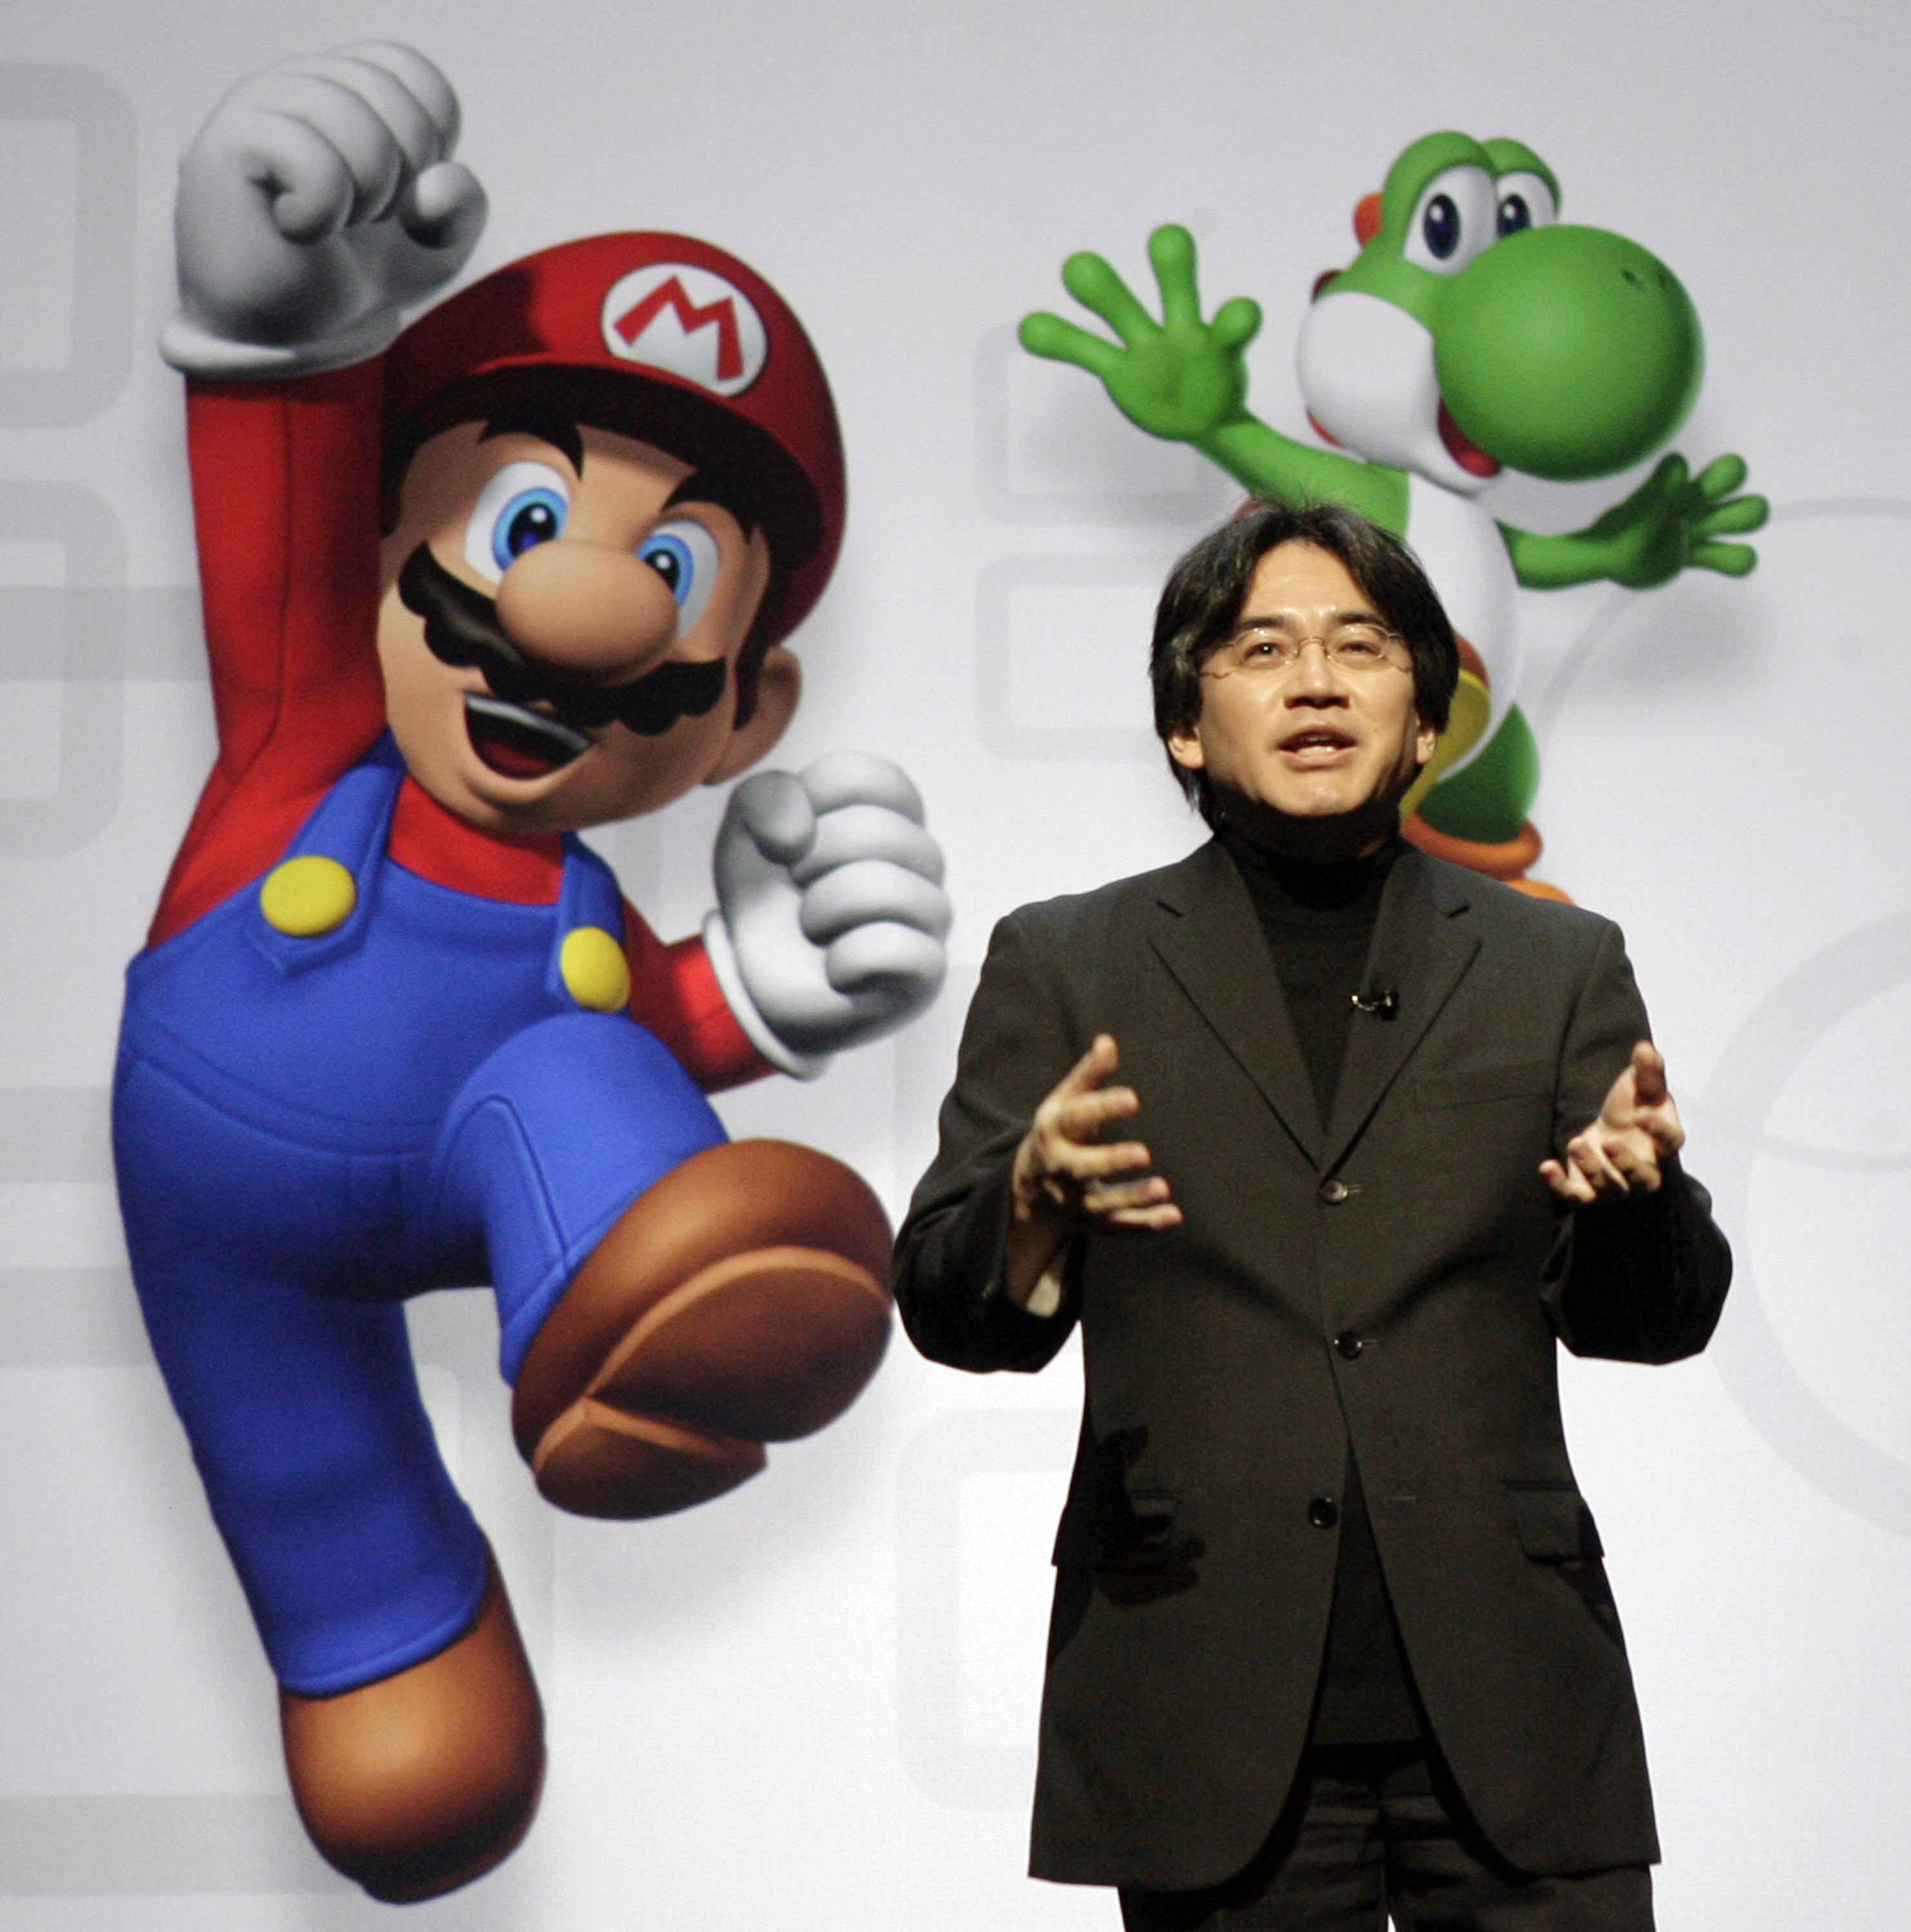 In this July 15, 2008 file photo, Satoru Iwata, President and CEO of Nintendo Co. Ltd., speaks at a news conference where Nintendo unveiled an enhancement for its Wii Remote controller and new games at the E3 Media and Business Summit in Los Angeles.  Nintendo said President Iwata died Saturday, July 11, 2015, of a bile duct tumor in a Kyoto hospital, western Japan. Photo: AP